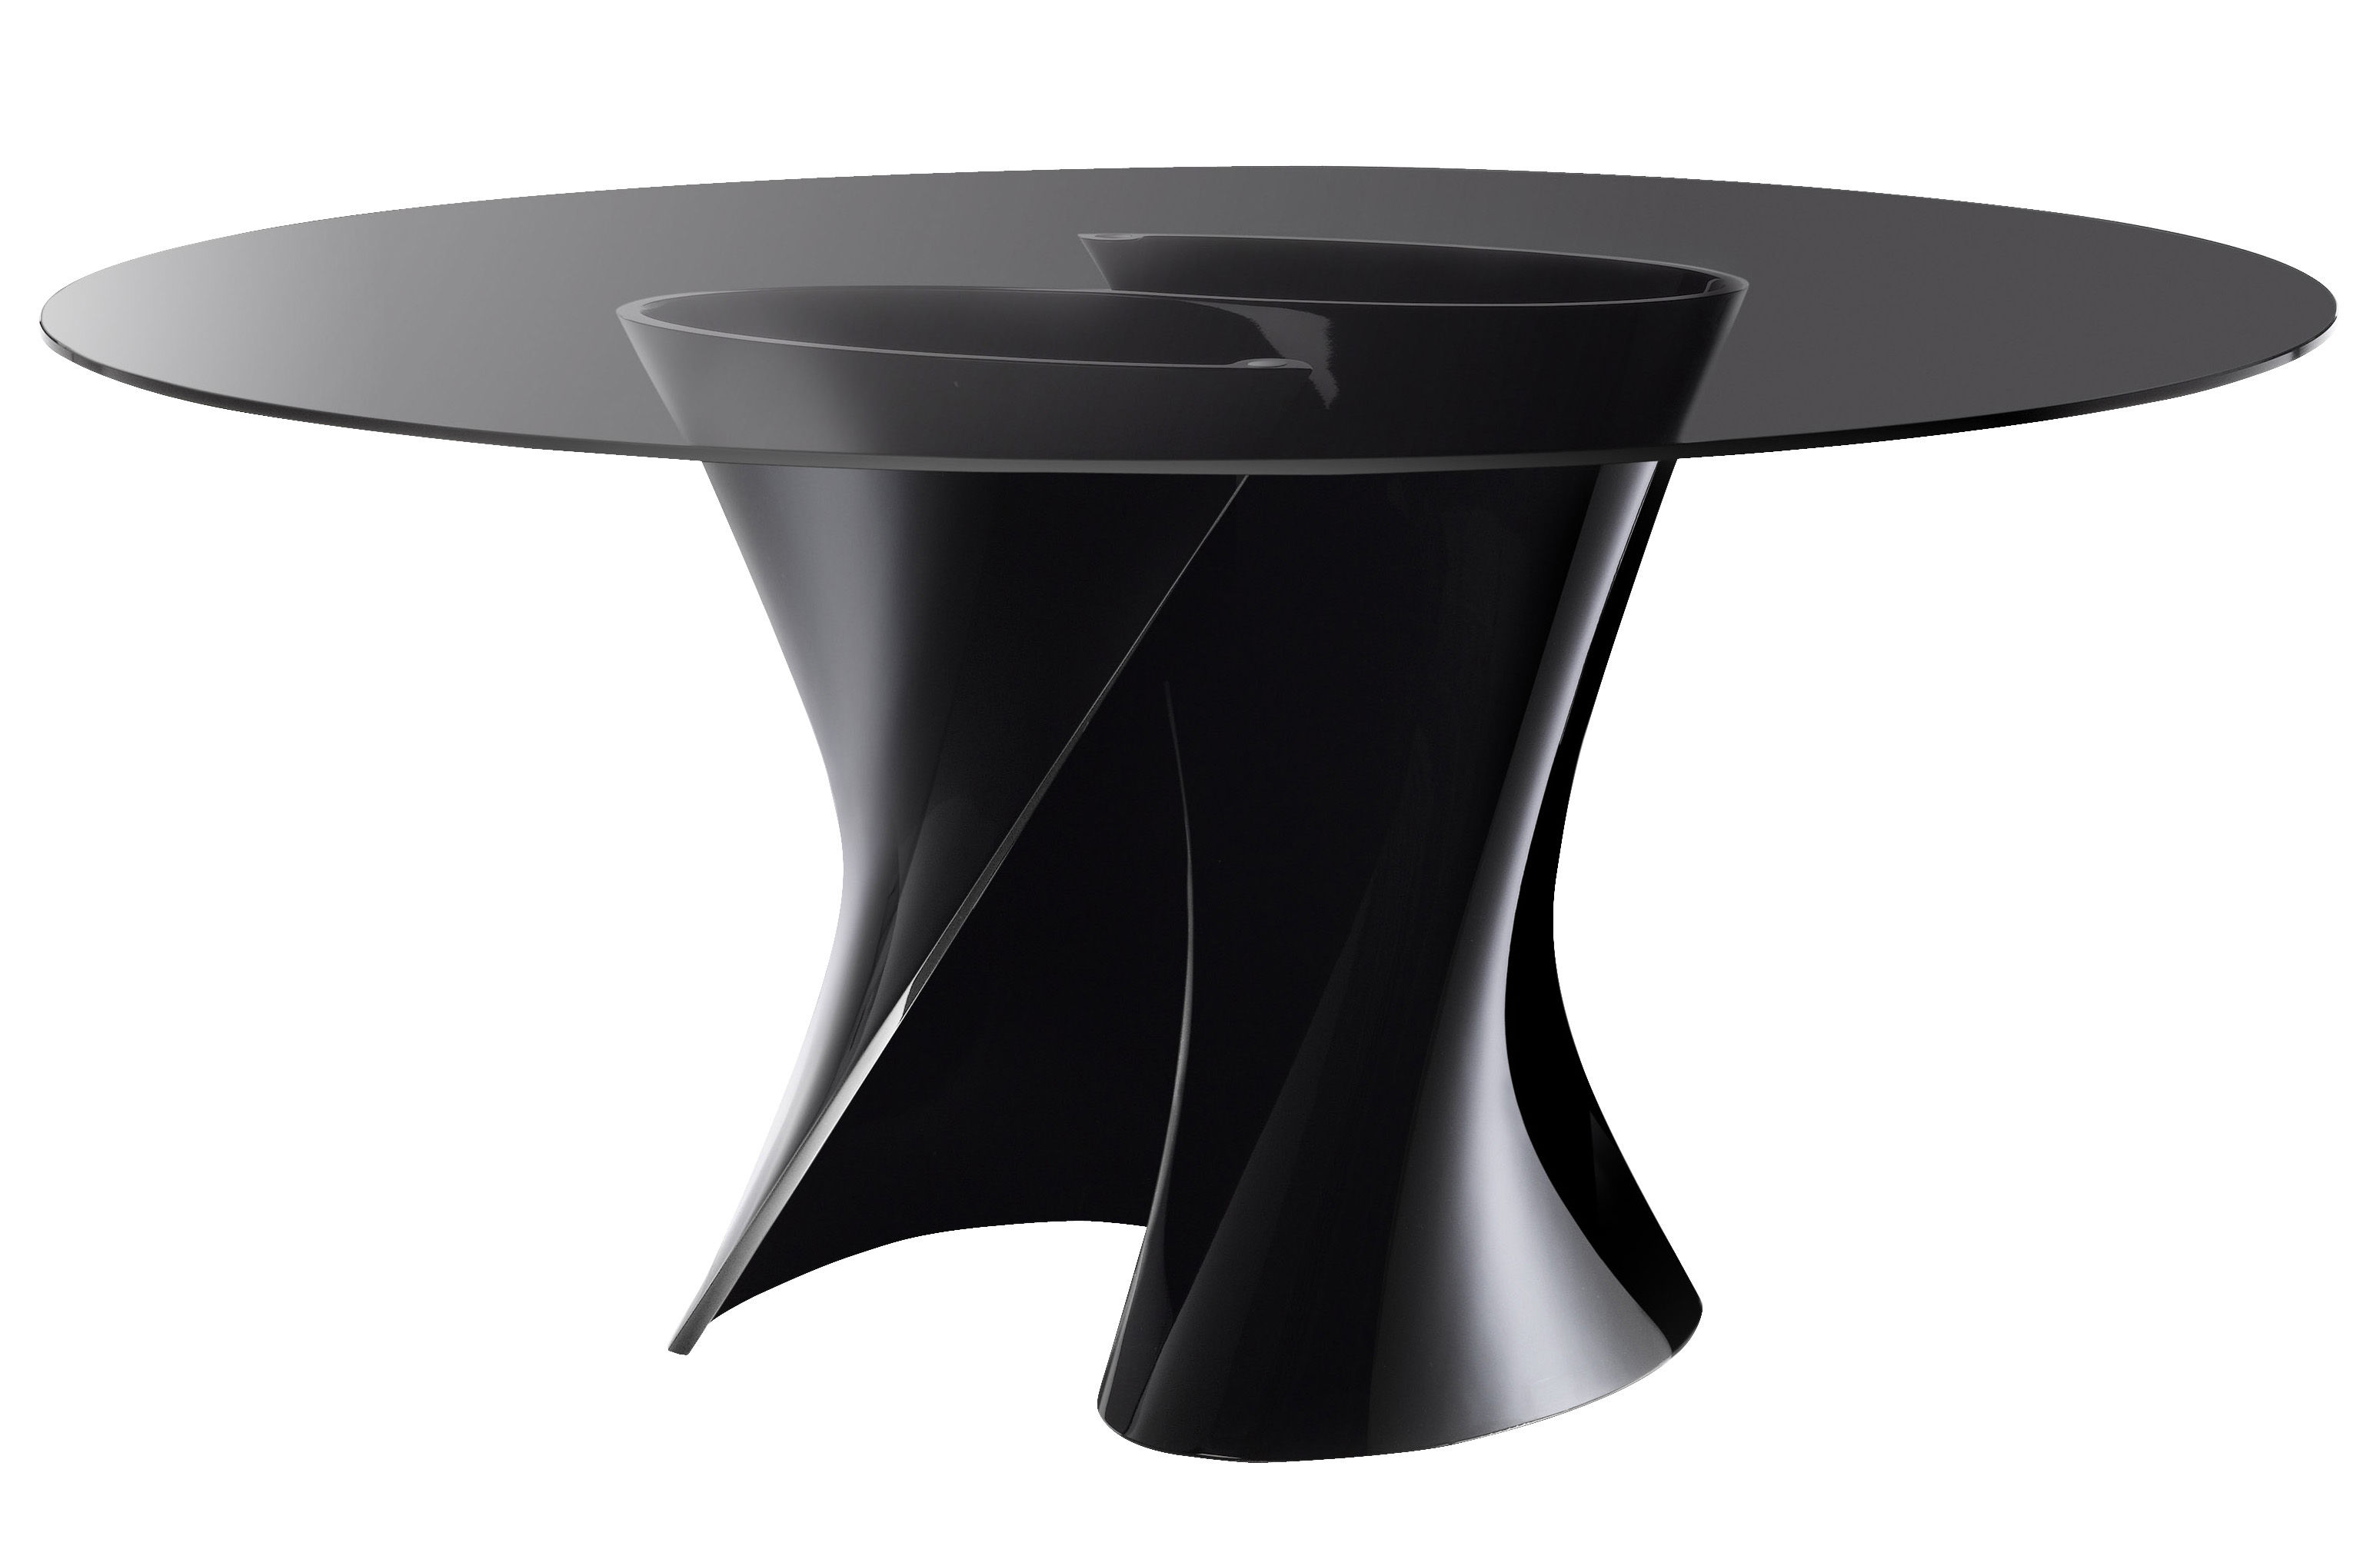 Furniture - Dining Tables - S Table ronde - Round Ø 140 cm by MDF Italia - Smoked grey  top / Black base - Cristalplant, Soak glass